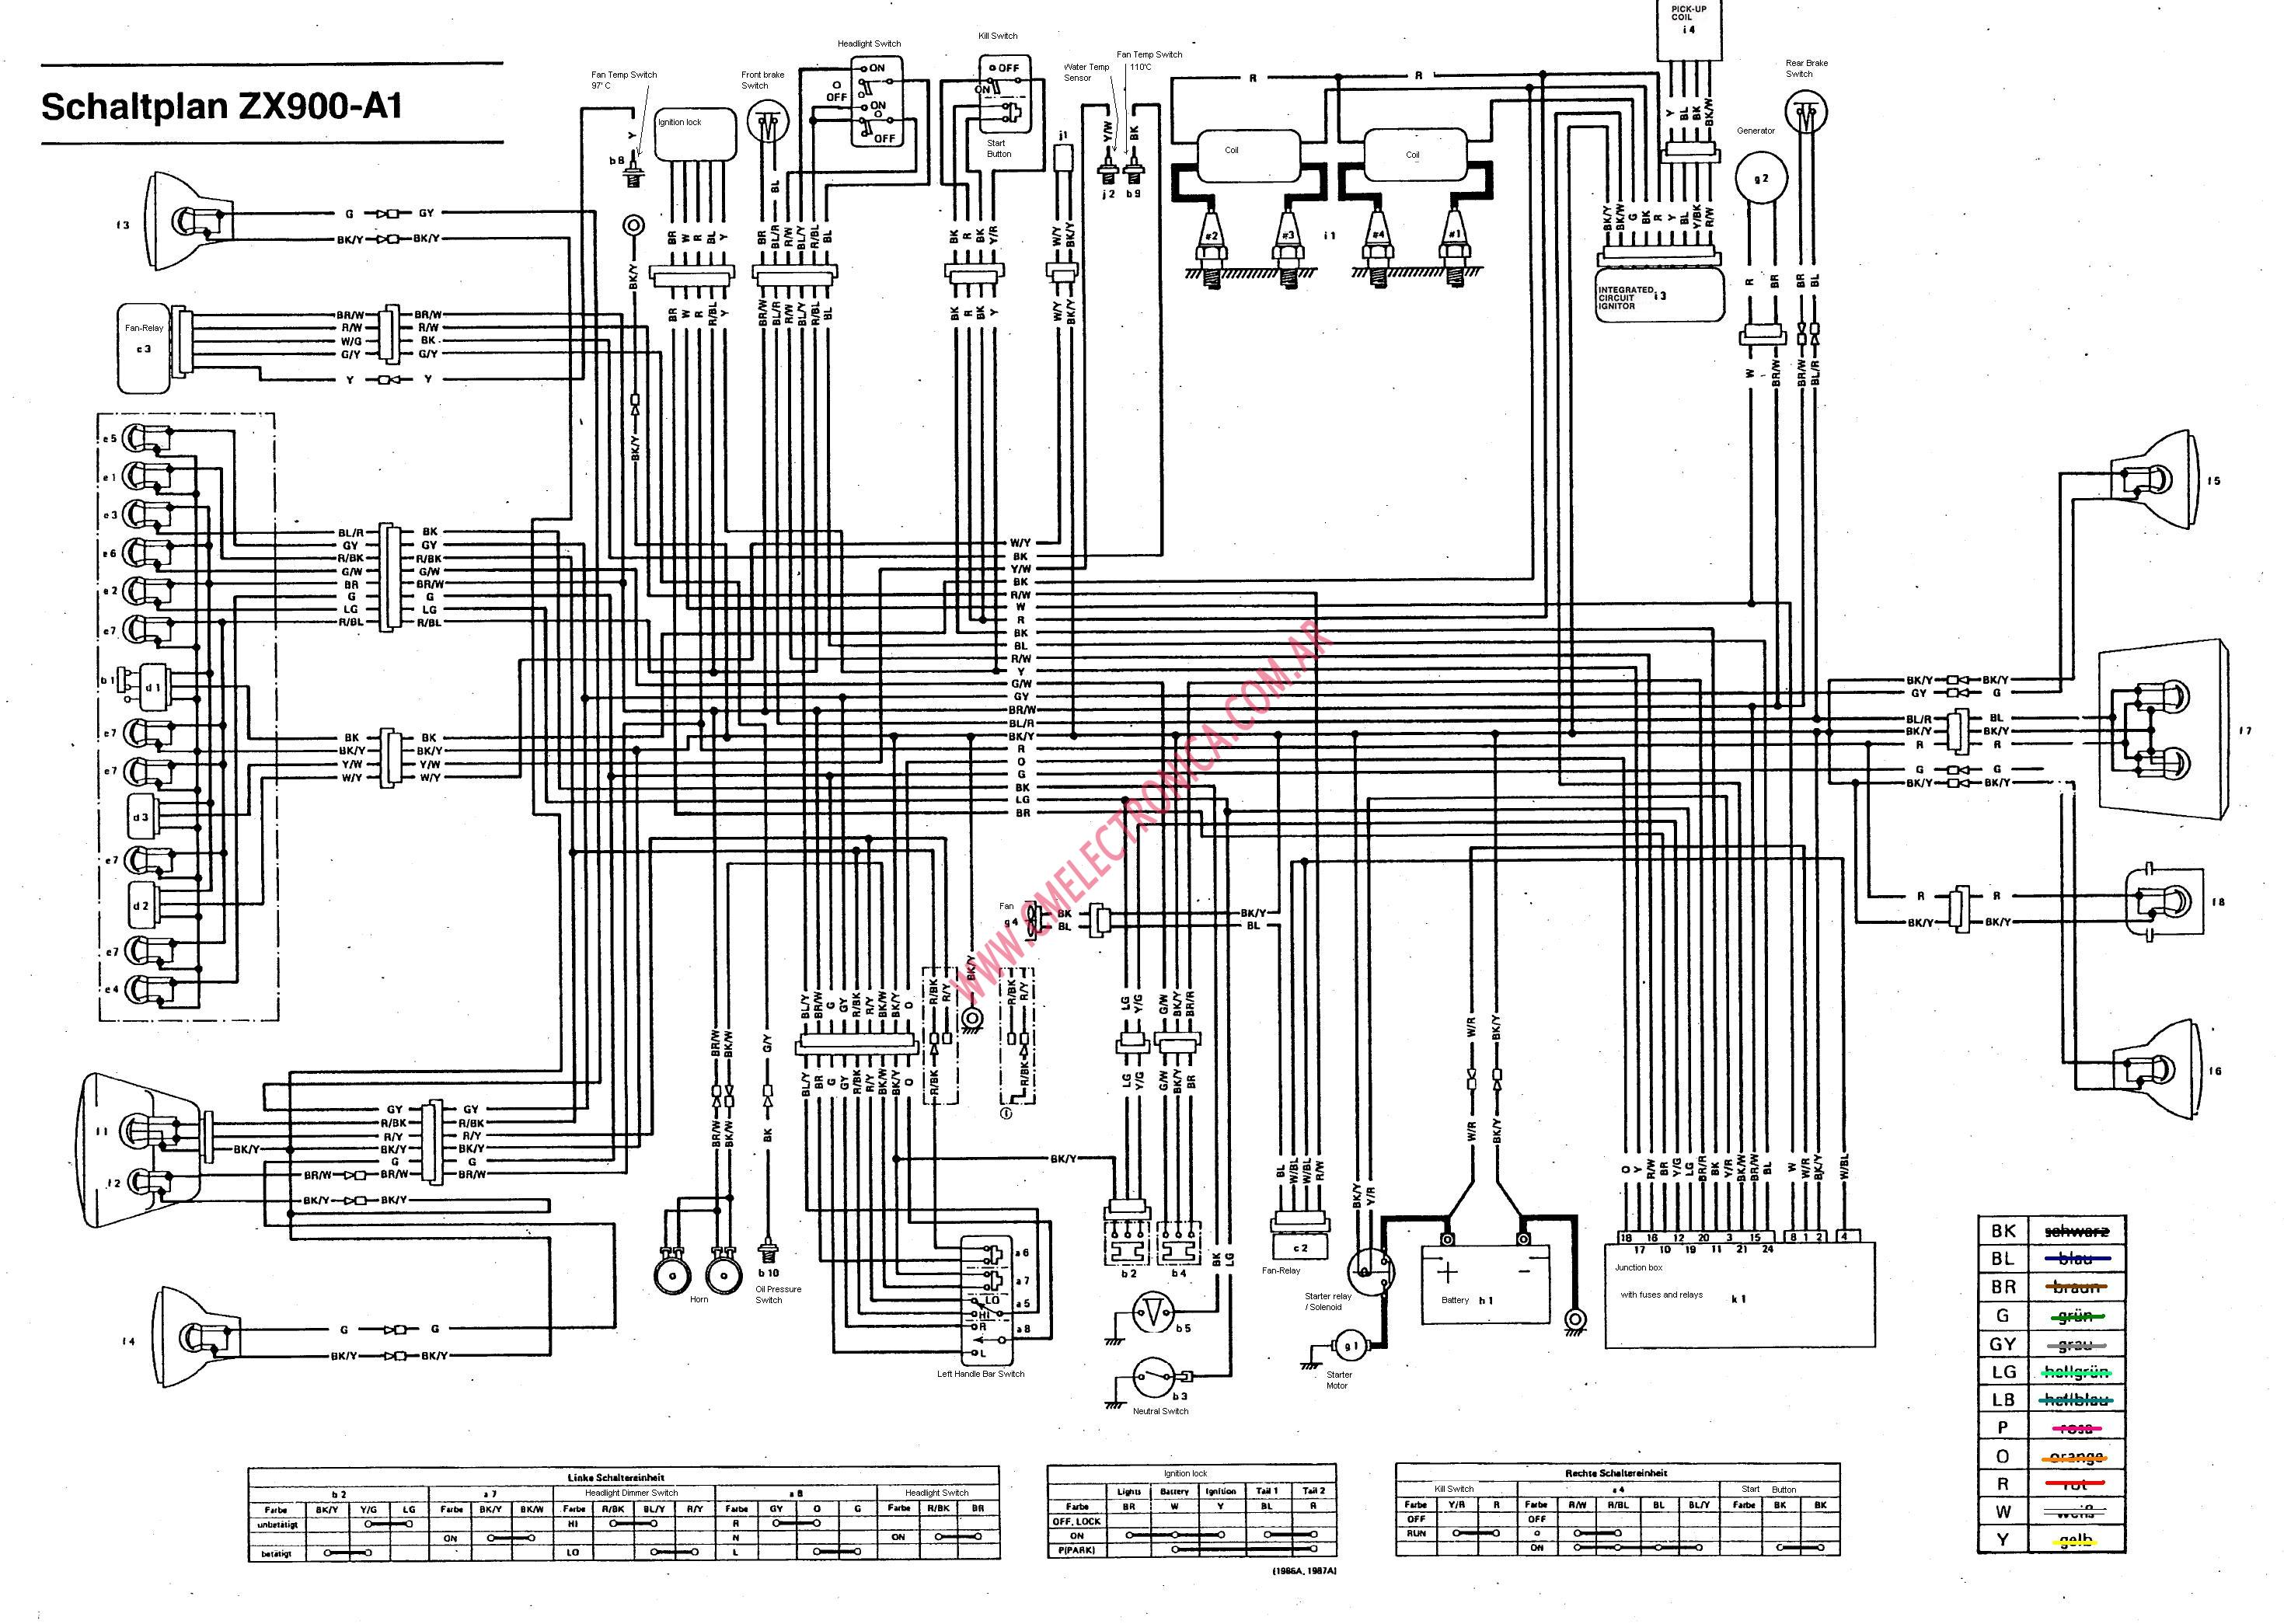 [DIAGRAM] Audi A2 Workshop Service Wiring Diagram FULL